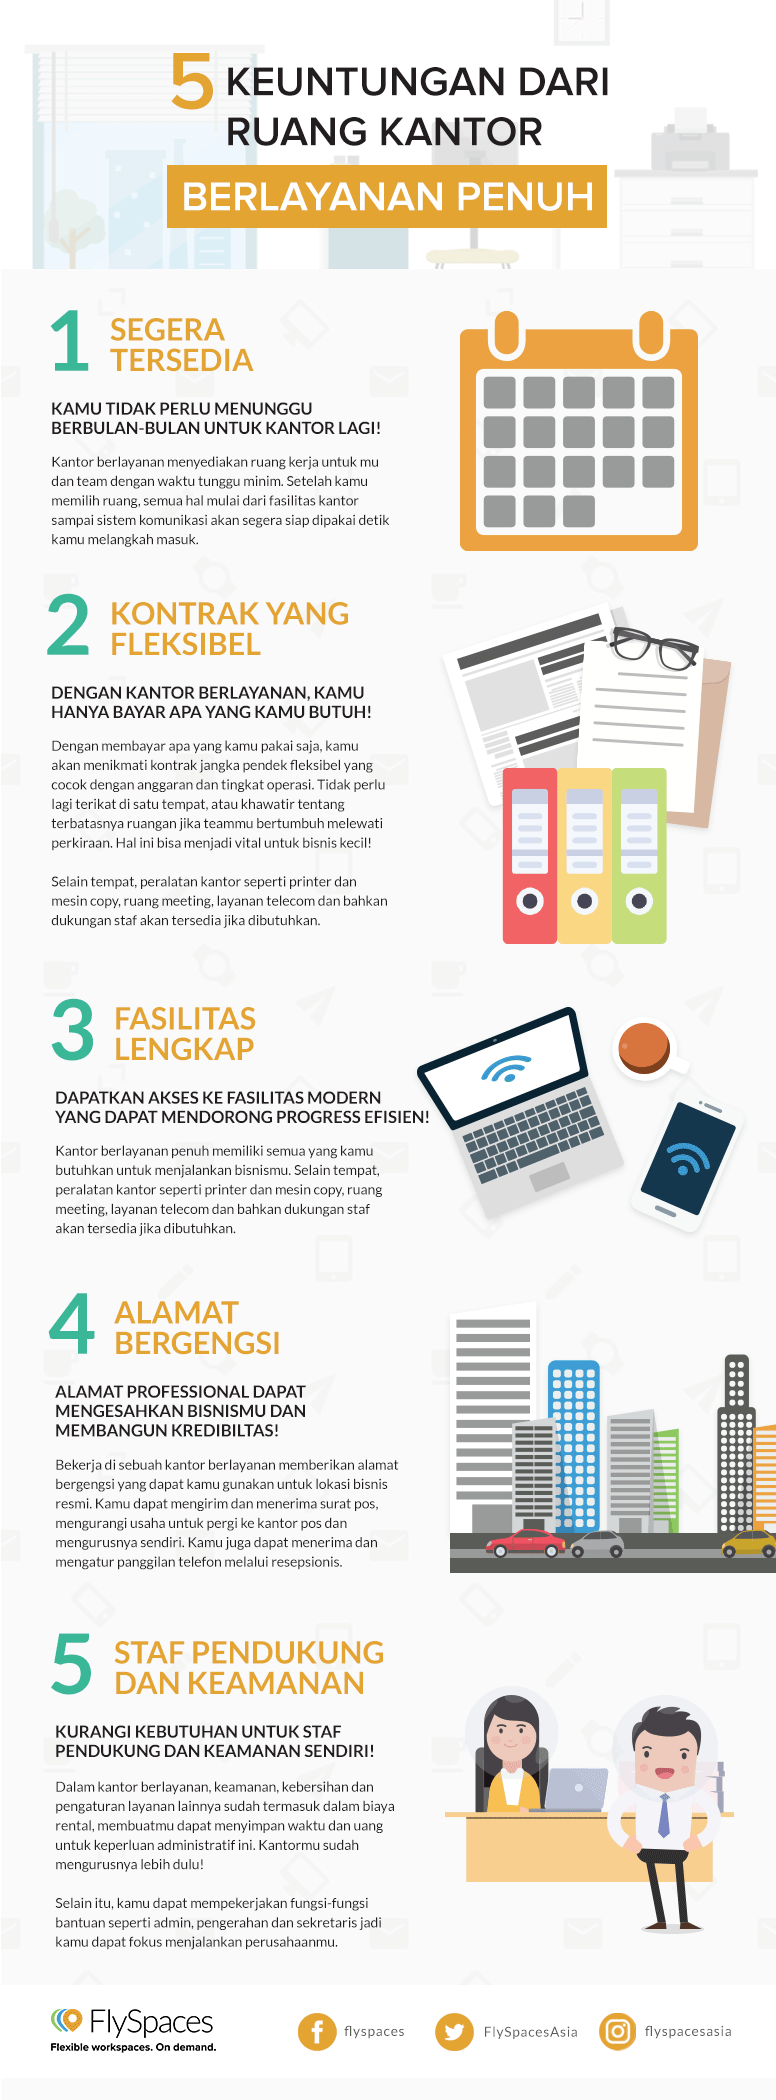 bahasa serviced office benefits